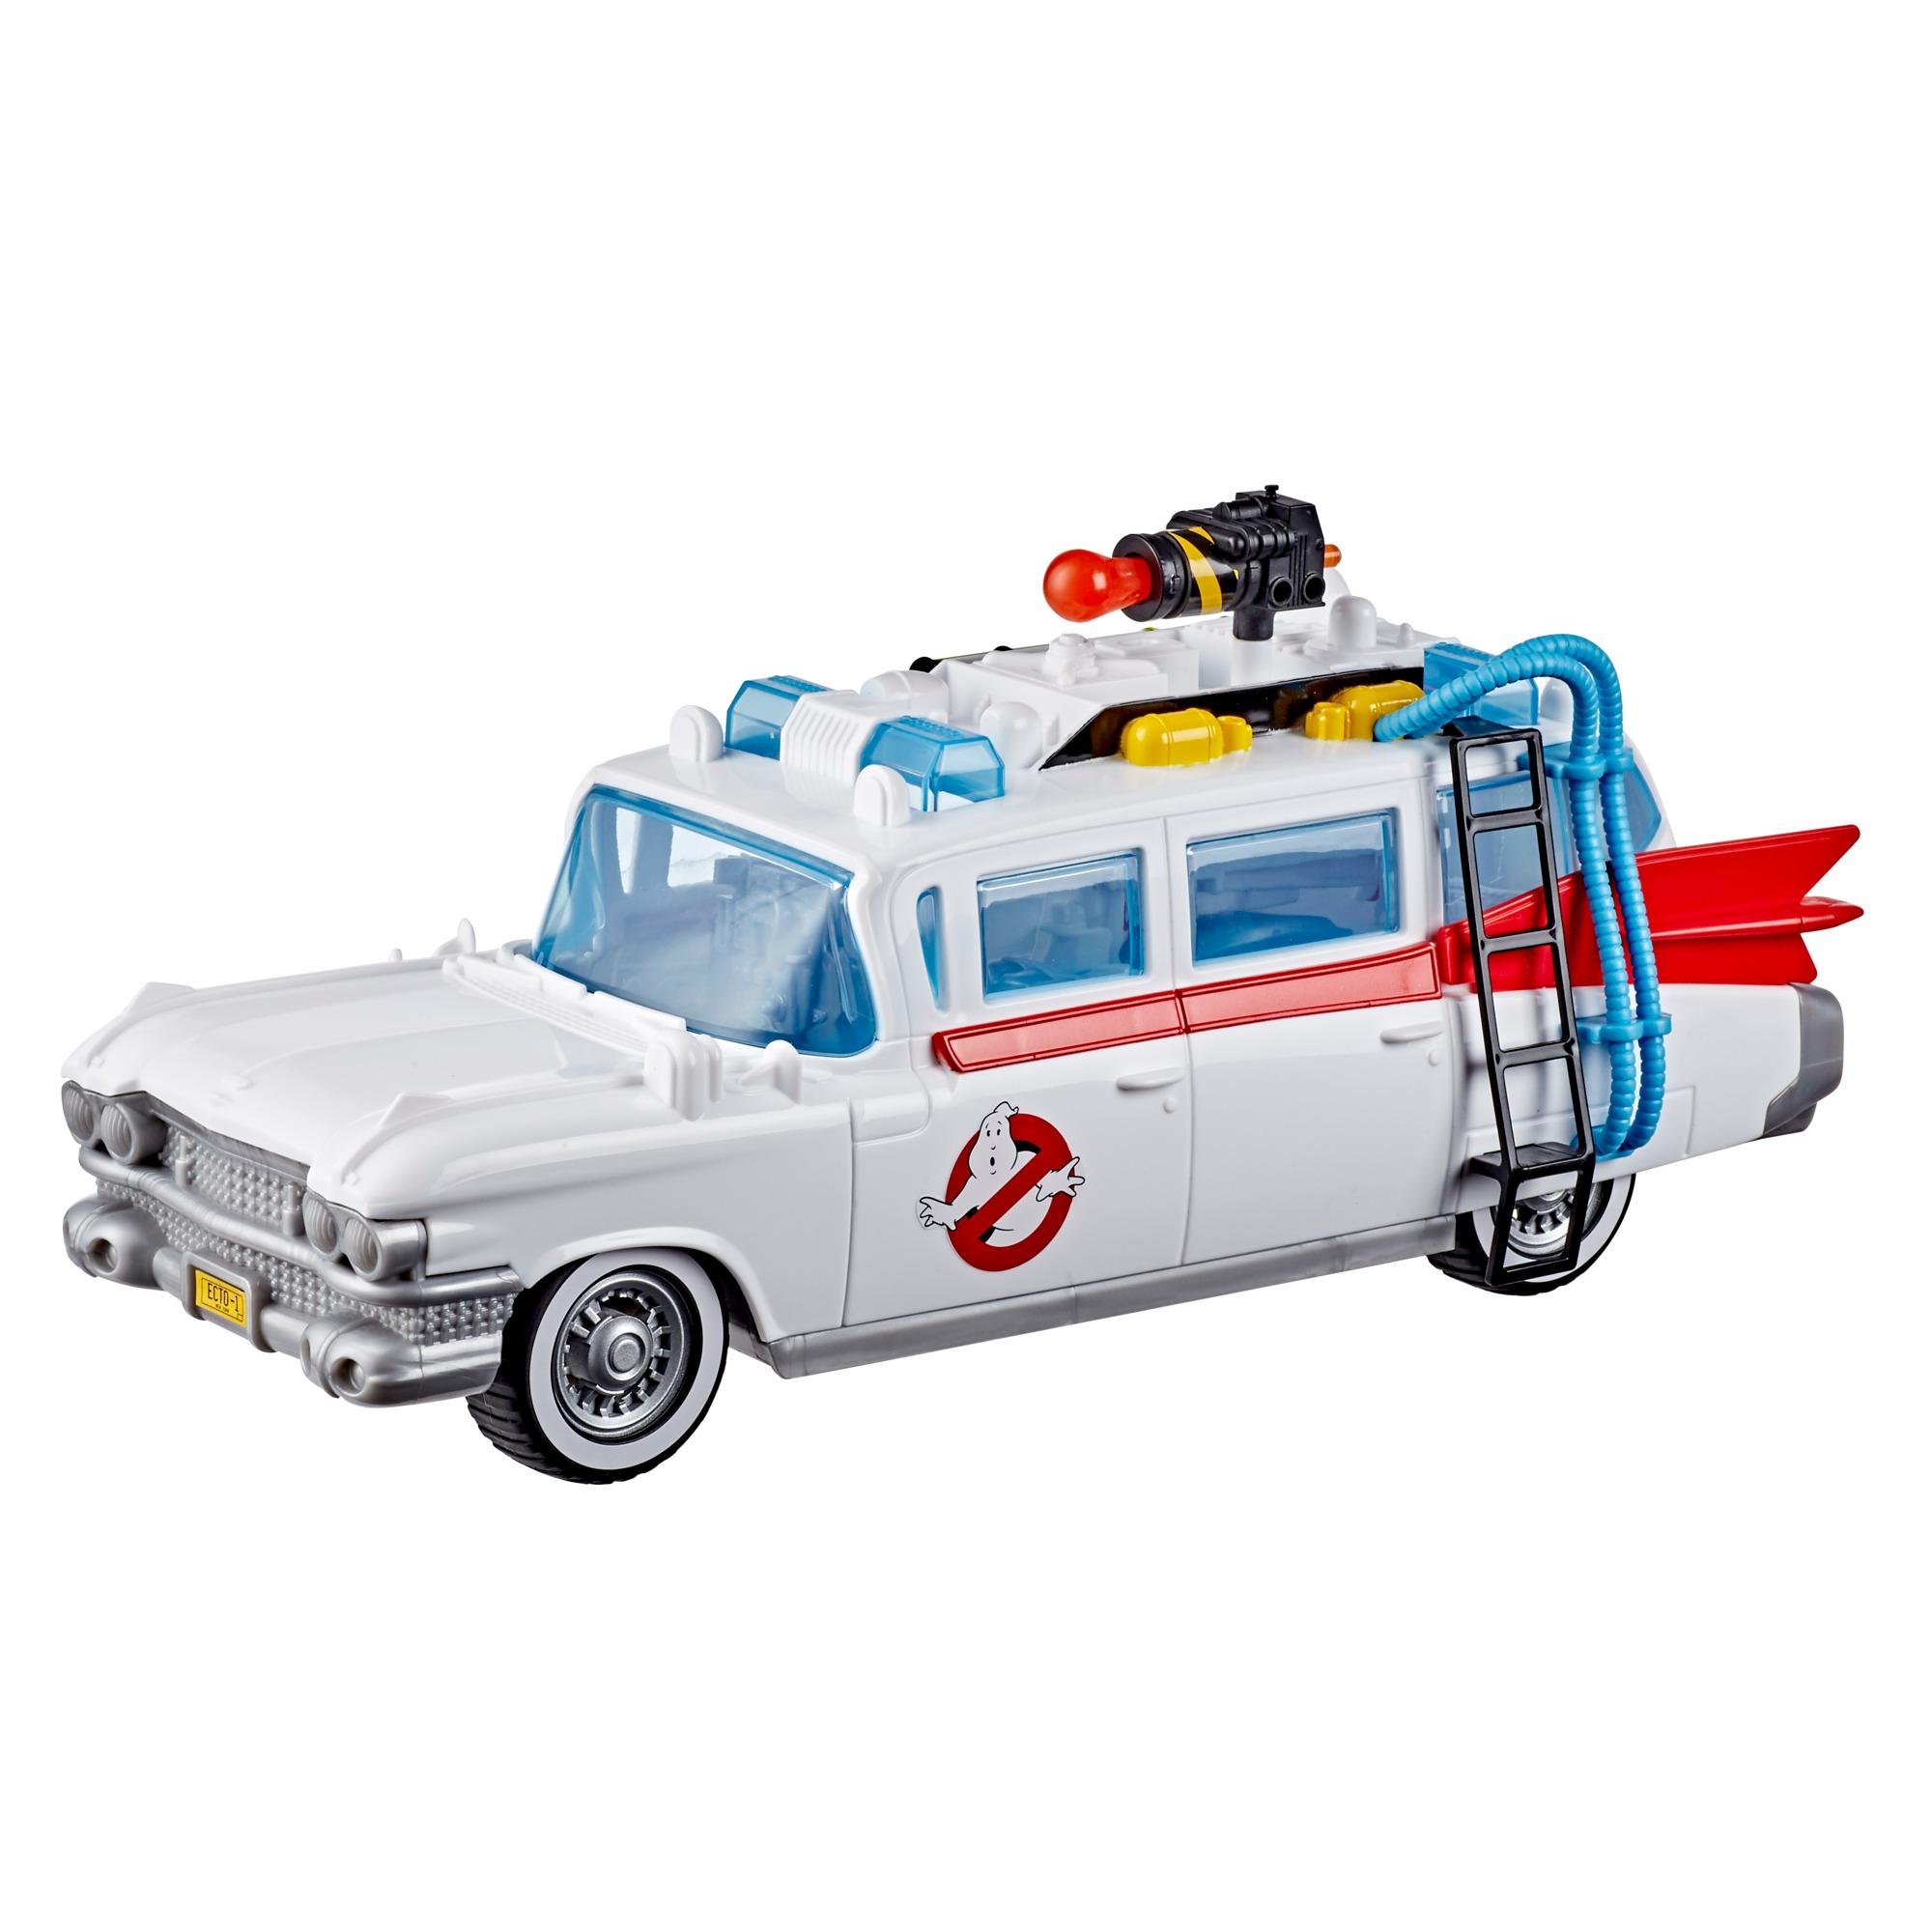 Ghostbusters Movie Ecto-1 Playset with Accessories for Kids Ages 4 and Up for Kids, Collectors, and Fans